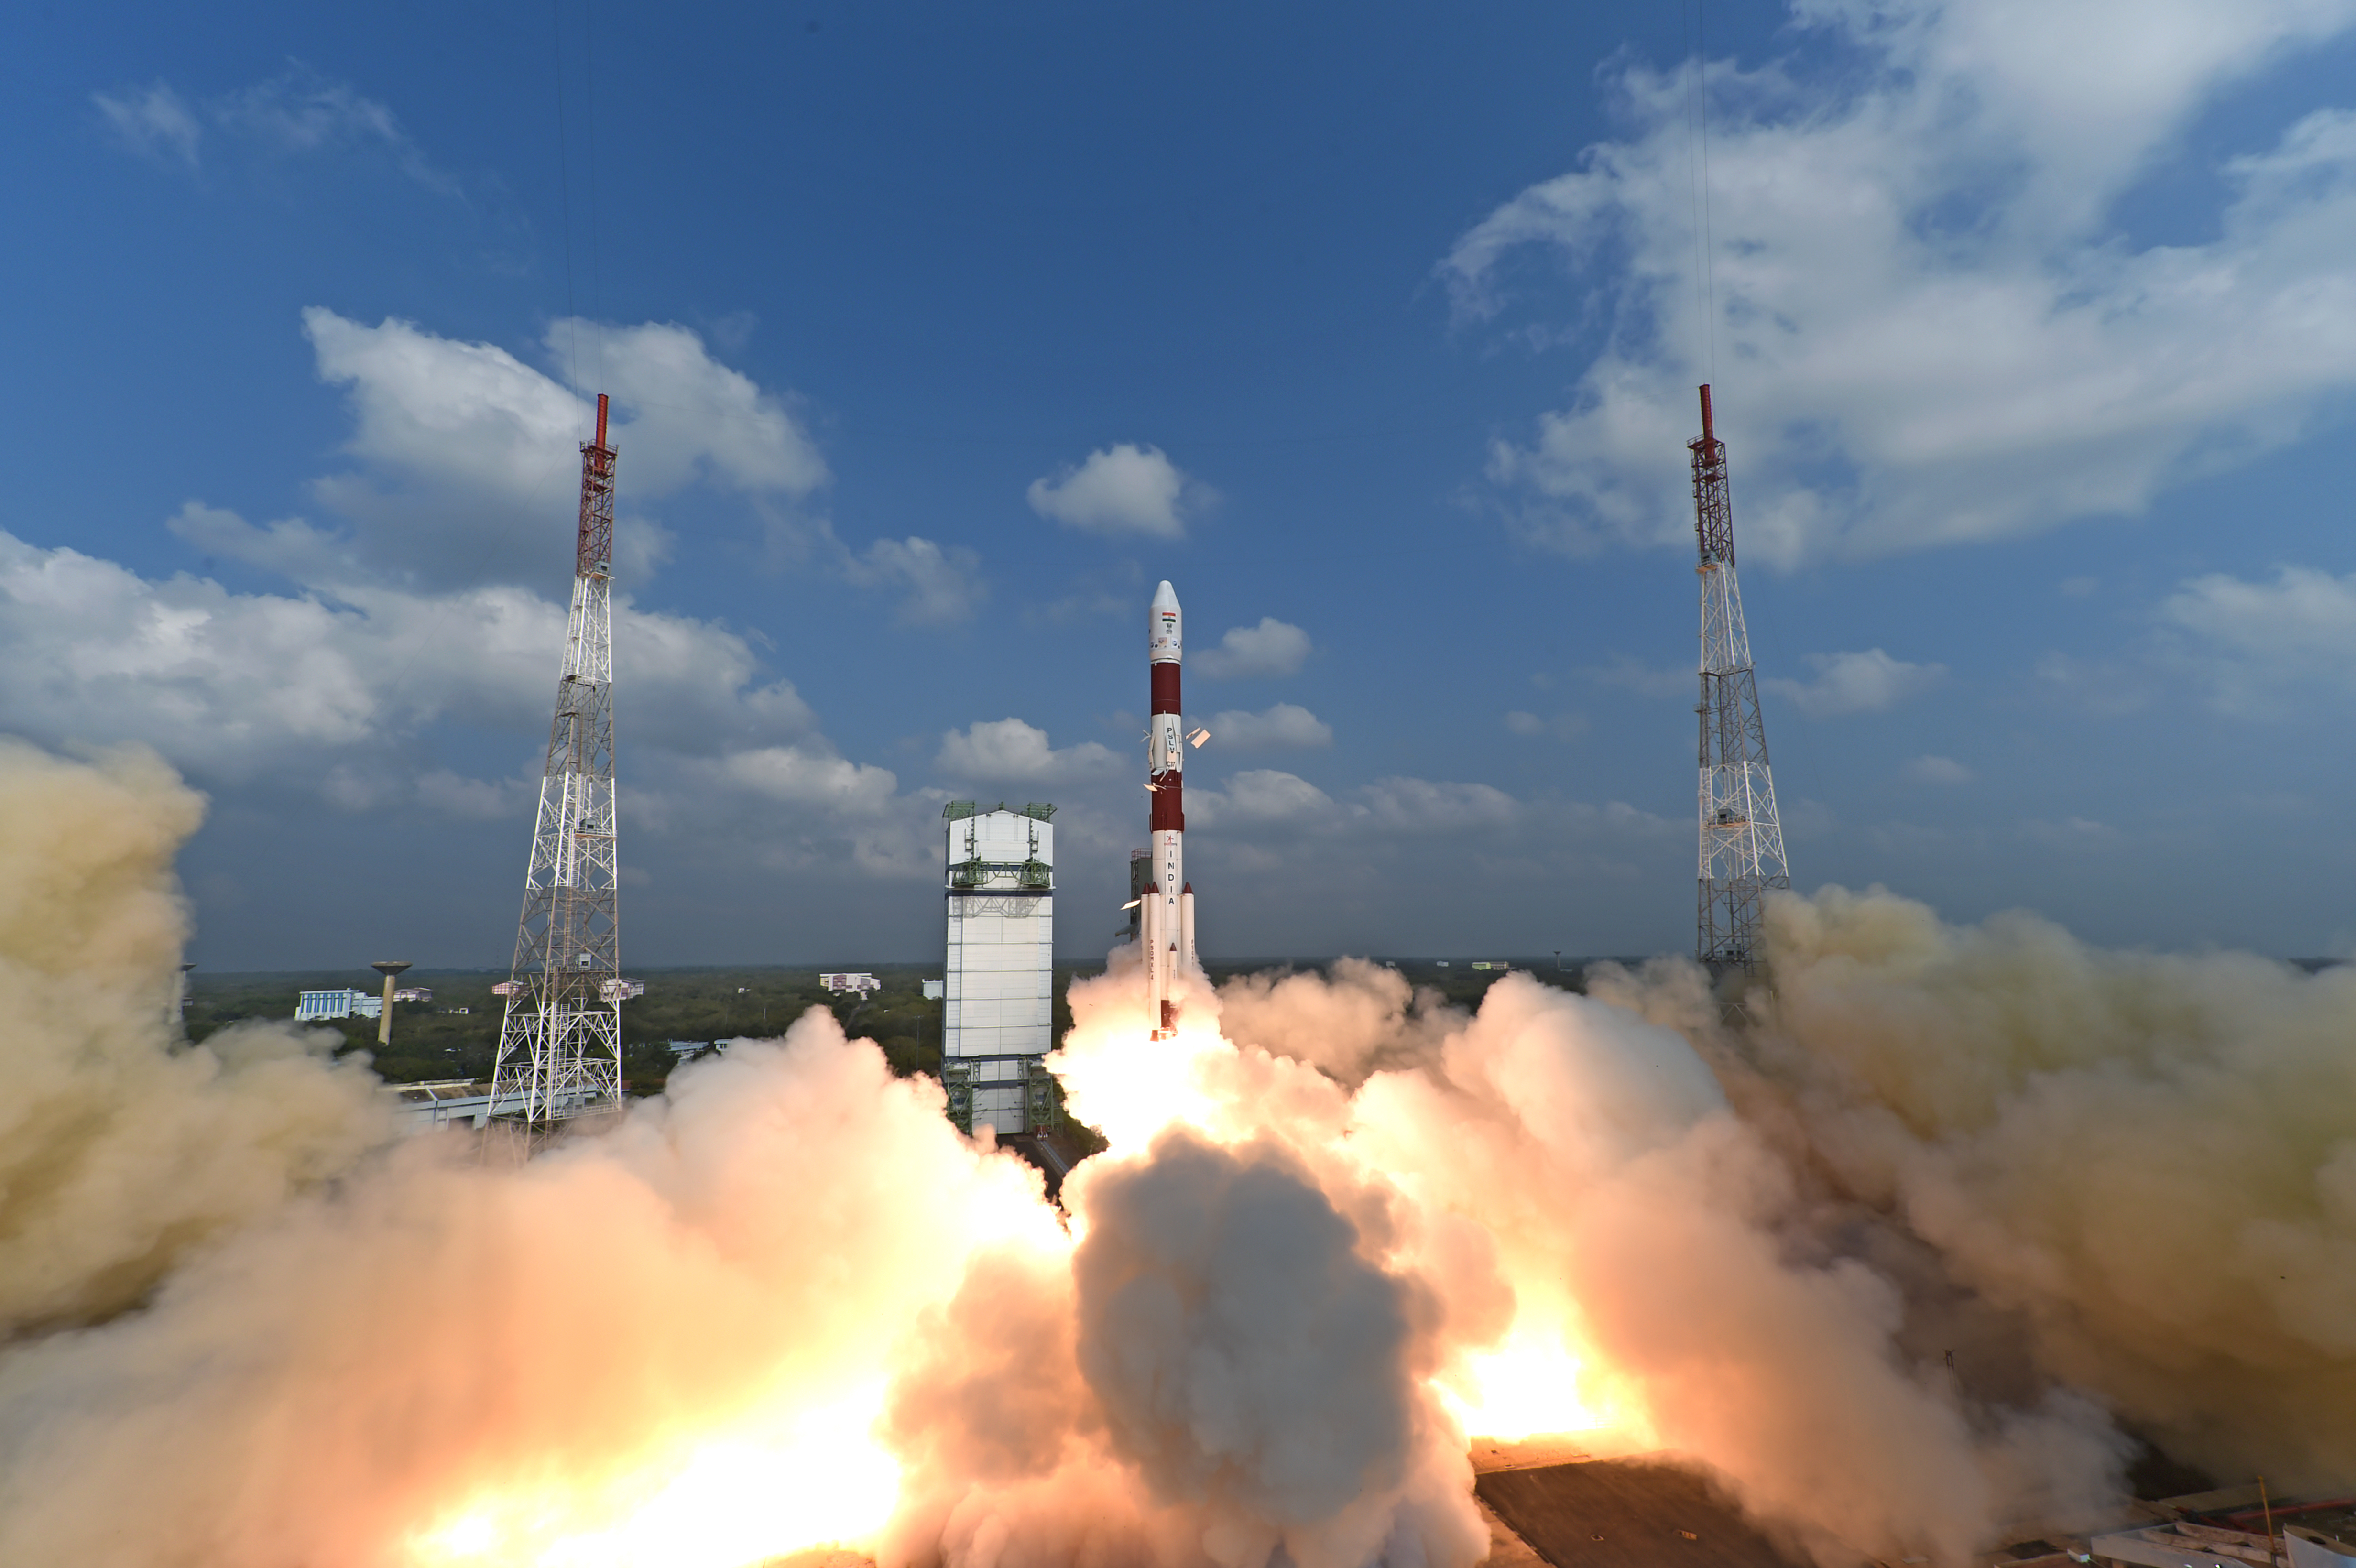 PSLV-C37 goes up carrying a record 104 satellites from Sriharikota on February 15.